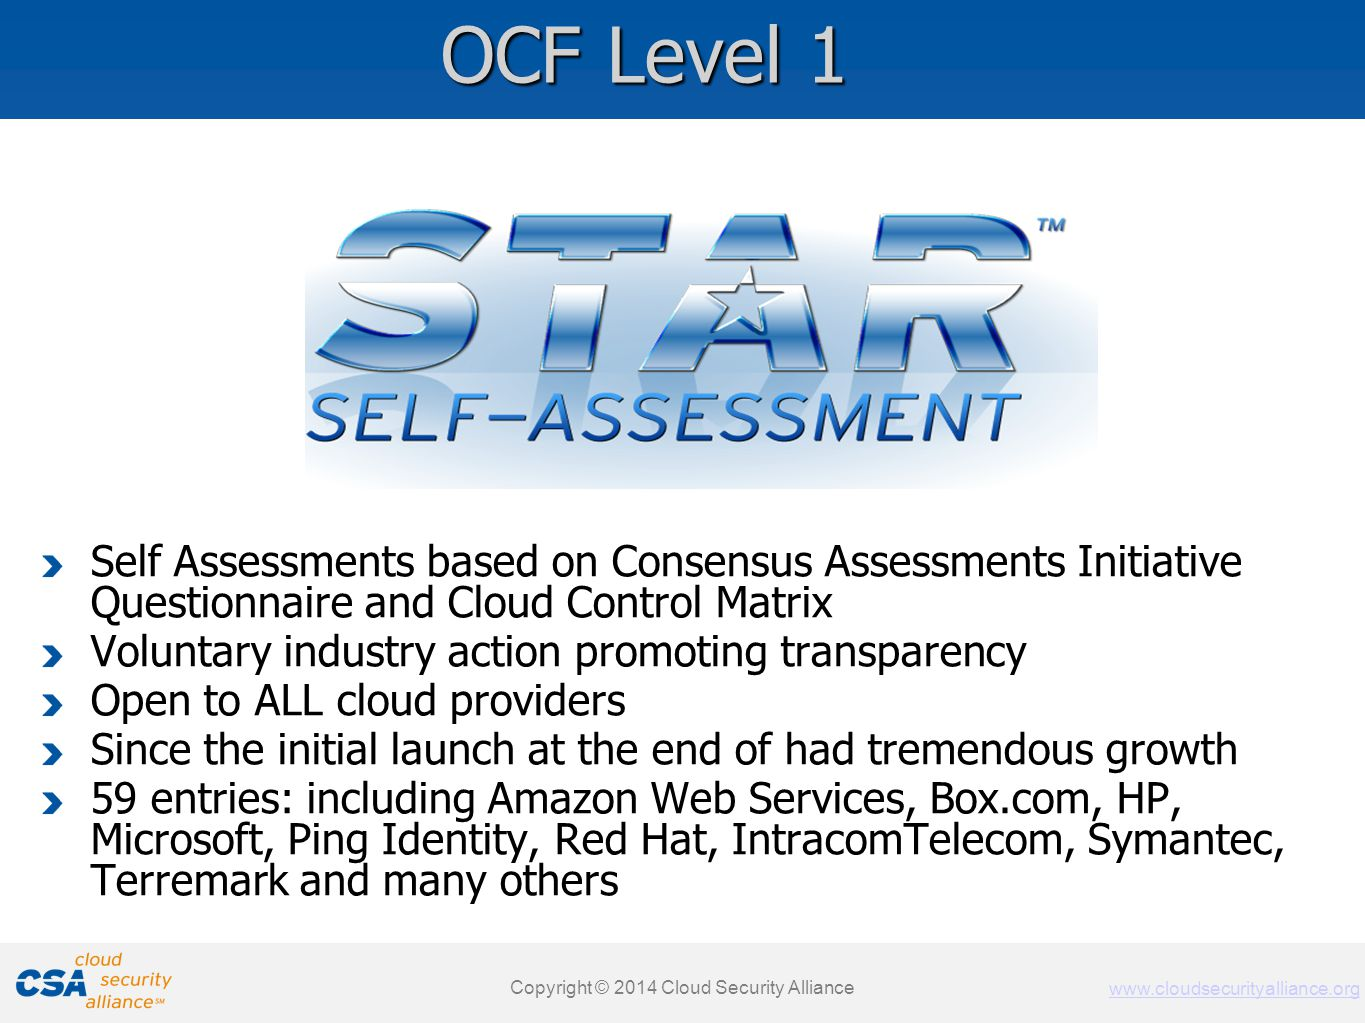 www.cloudsecurityalliance.org Copyright © 2011 Cloud Security Alliance www.cloudsecurityalliance.org Self Assessments based on Consensus Assessments Initiative Questionnaire and Cloud Control Matrix Voluntary industry action promoting transparency Open to ALL cloud providers Since the initial launch at the end of had tremendous growth 59 entries: including Amazon Web Services, Box.com, HP, Microsoft, Ping Identity, Red Hat, IntracomTelecom, Symantec, Terremark and many others Copyright © 2014 Cloud Security Alliance